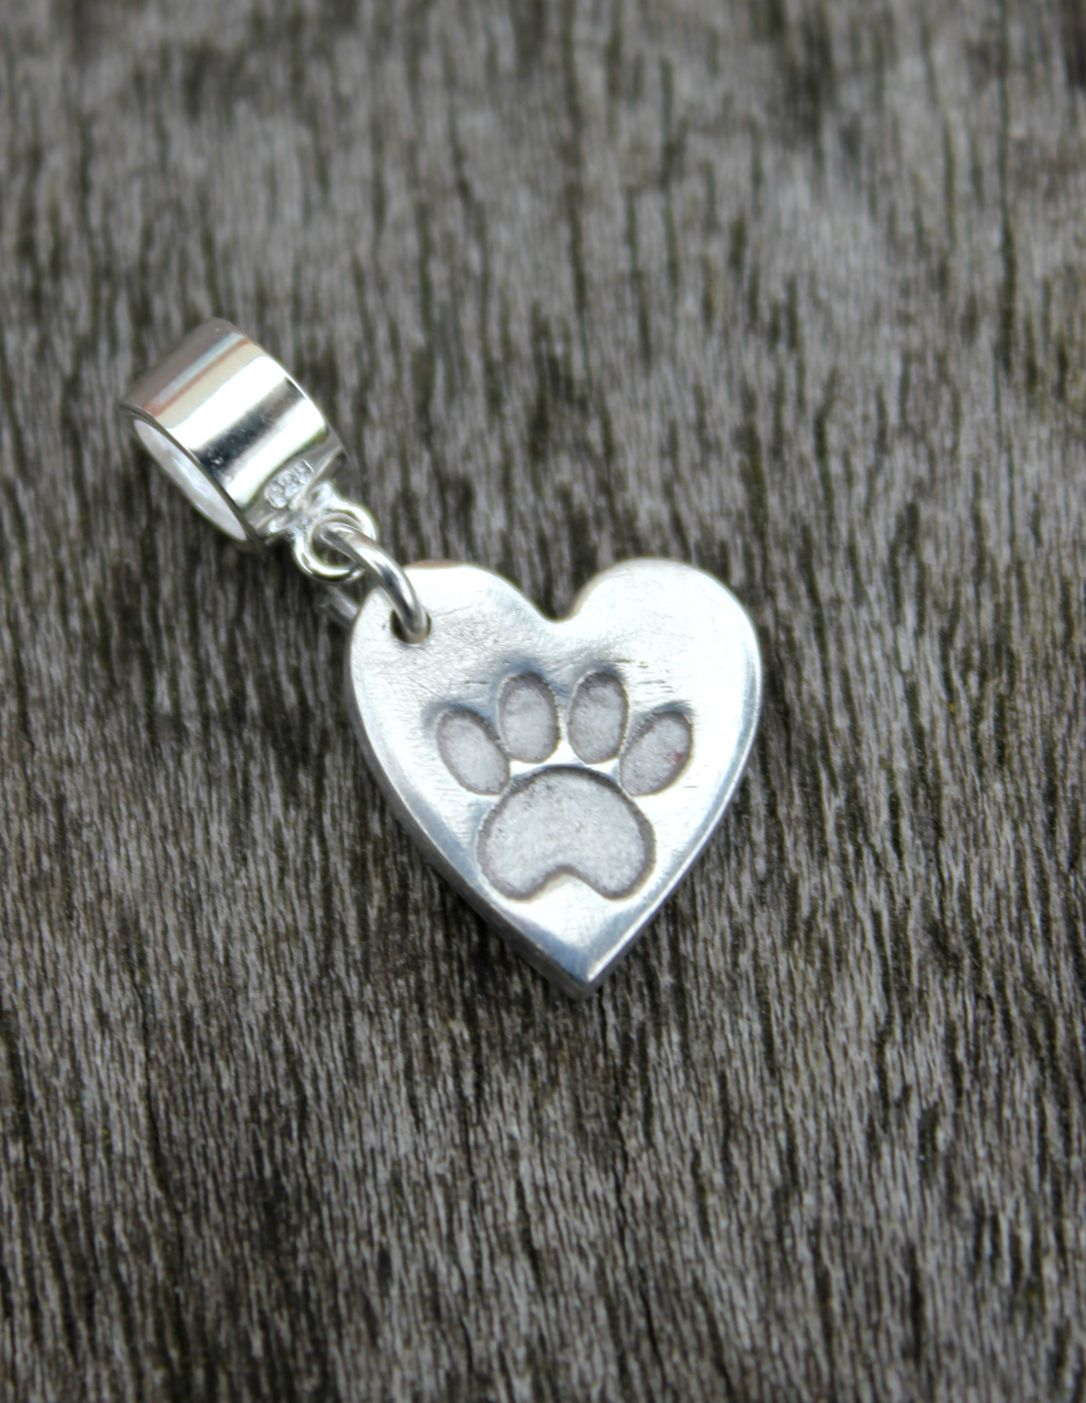 Silver pawprint heart Pandora charm by Little Silver Hedgehog